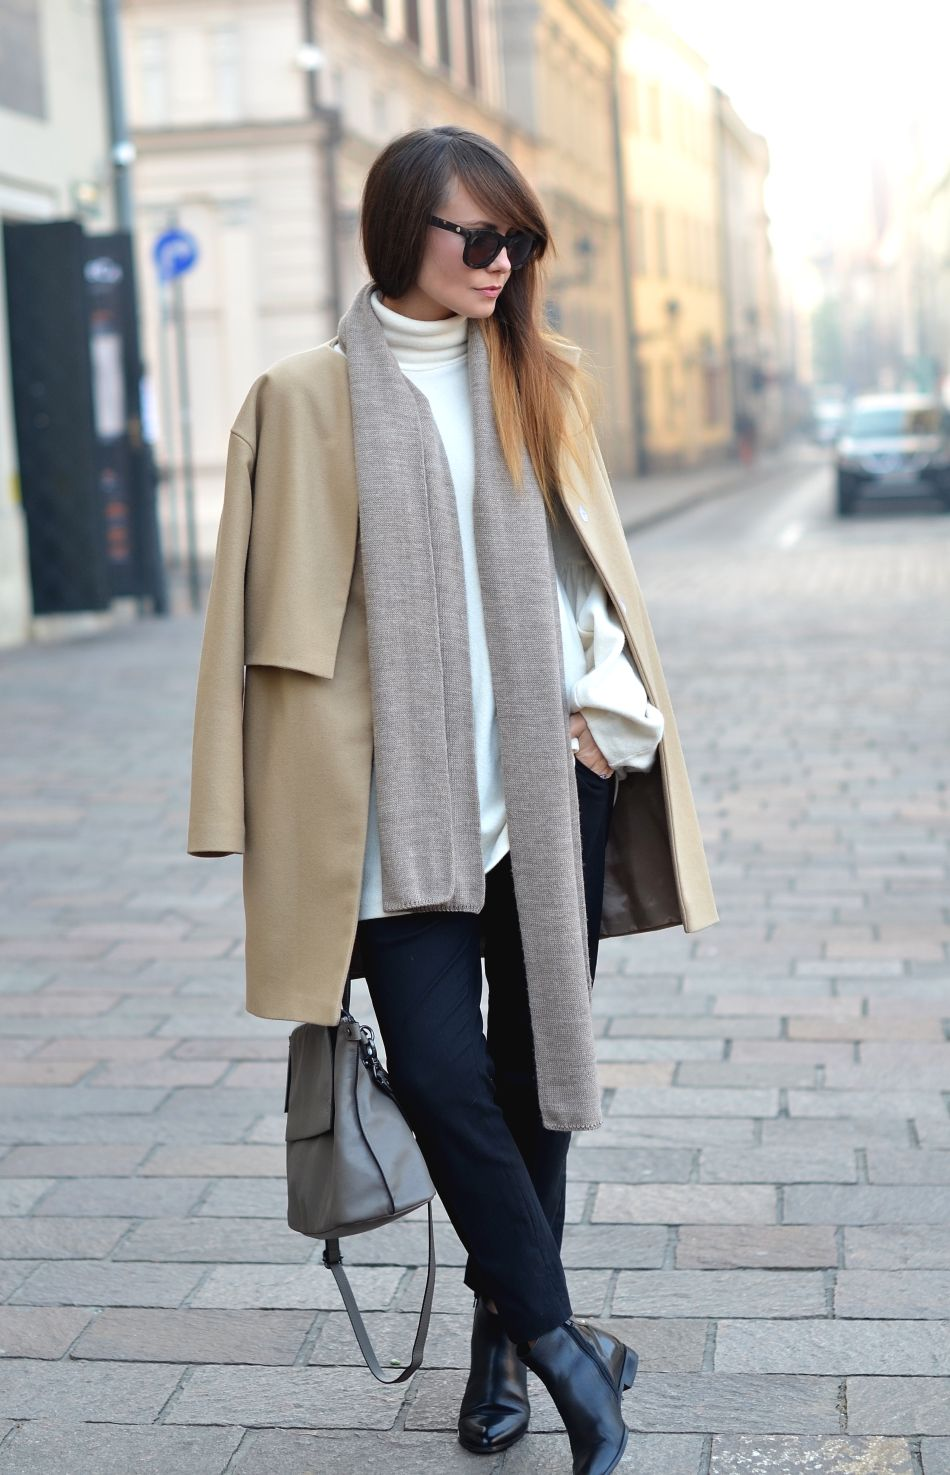 Kamila Leciak rocks this camel overcoat with cigarette trousers and an oversized scarf. Scarf: Lavaii to Lavende, Coat: RAW, Trousers: PresKA, Shoes: 7mil.